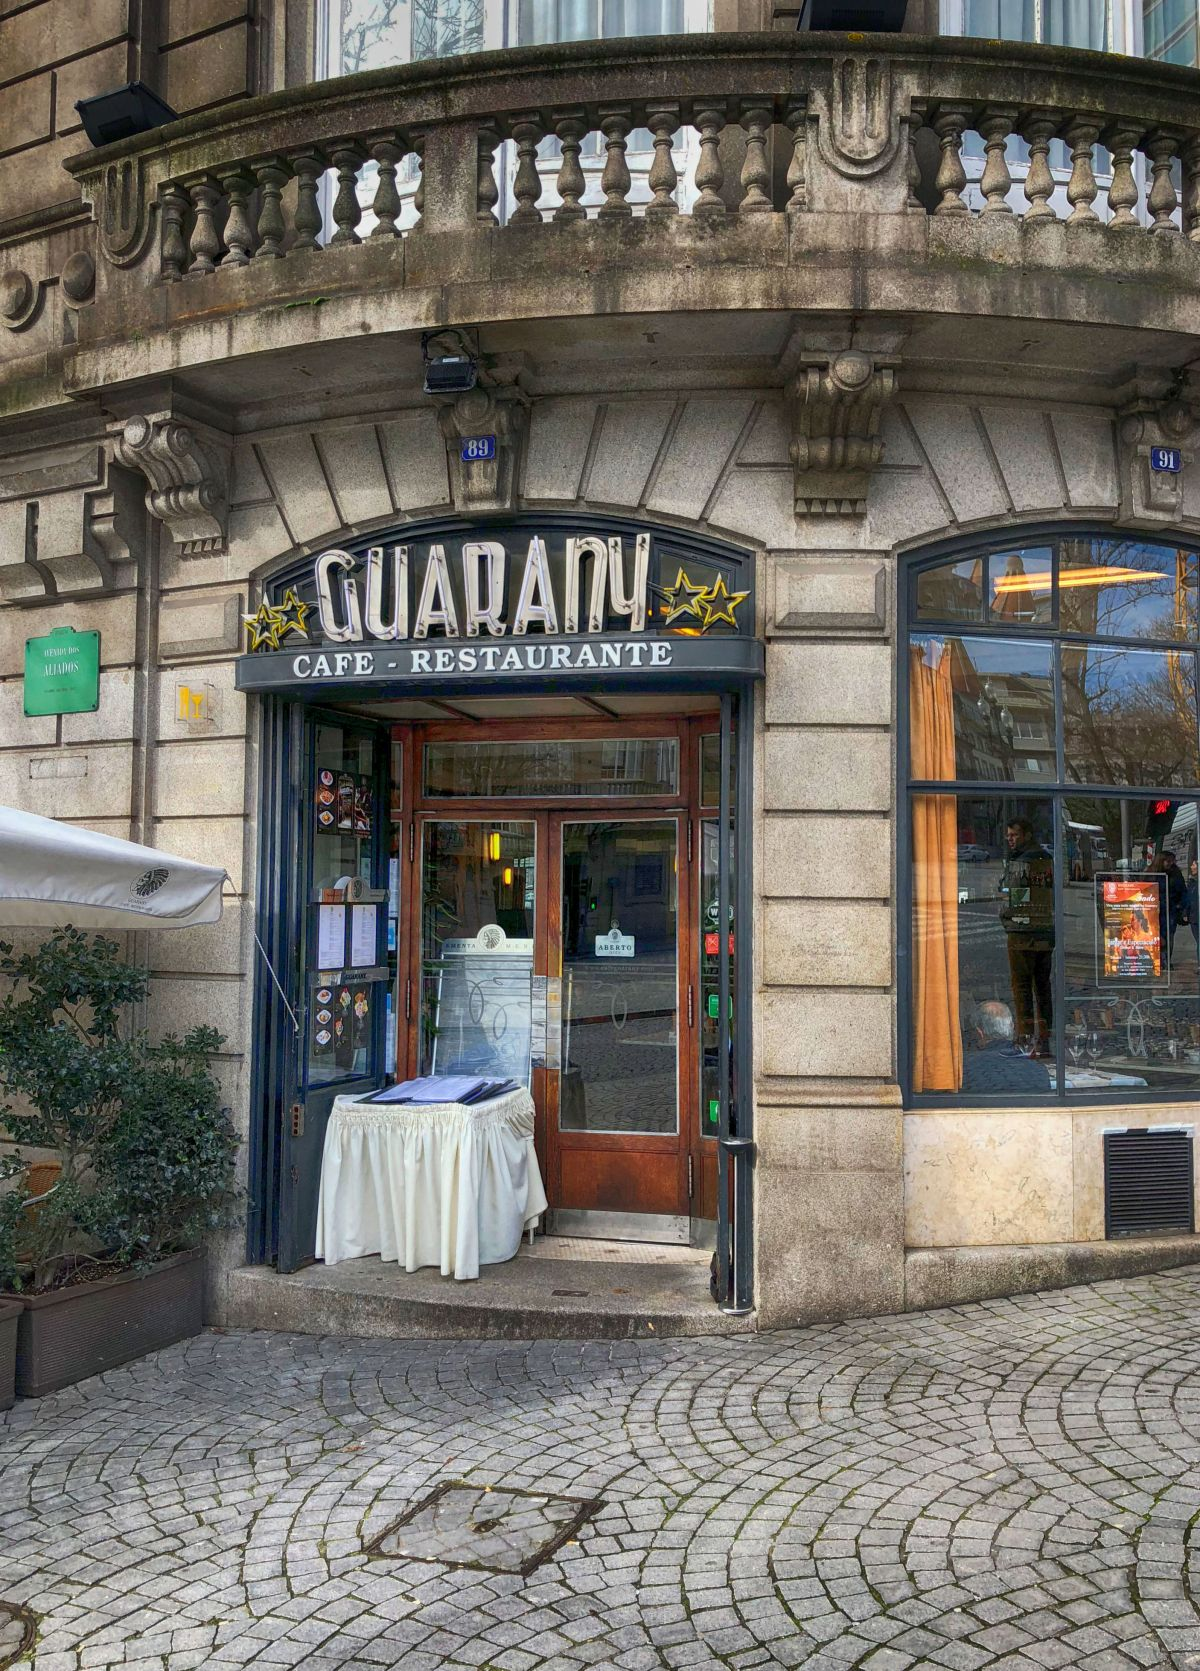 Café Guarany, Porto Portugal